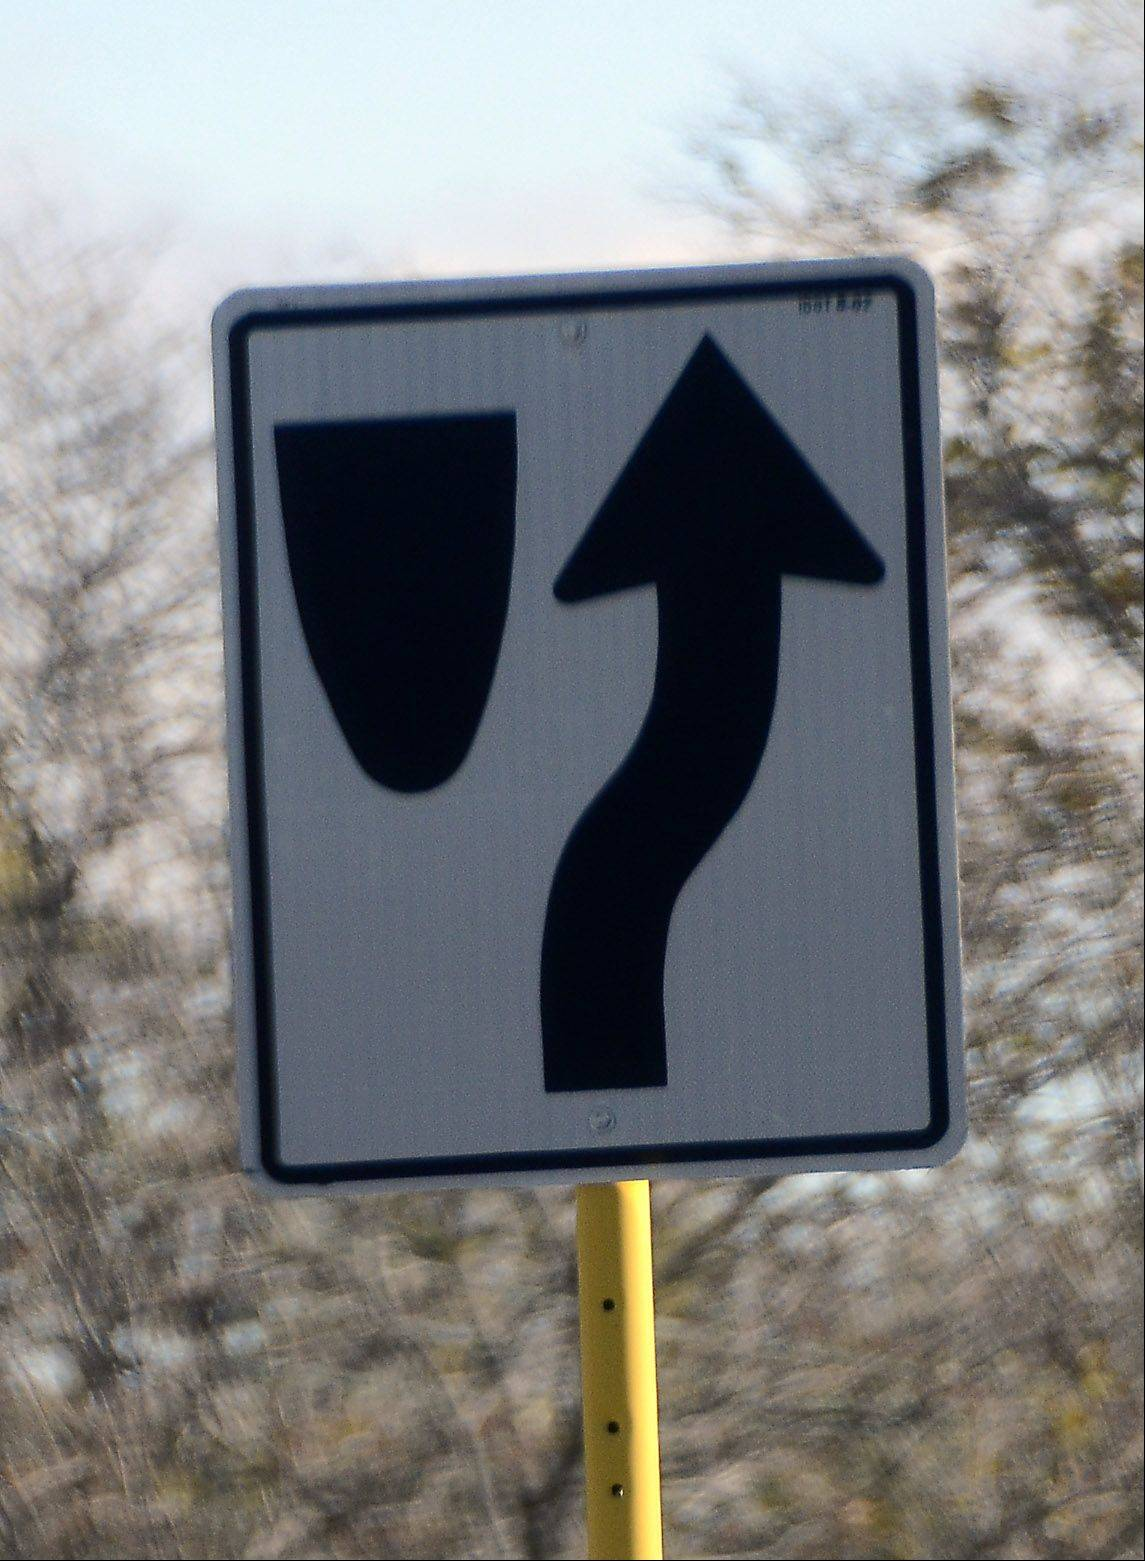 Keep right: The arrow on this sign tells you where to drive when you approach traffic islands or medians.